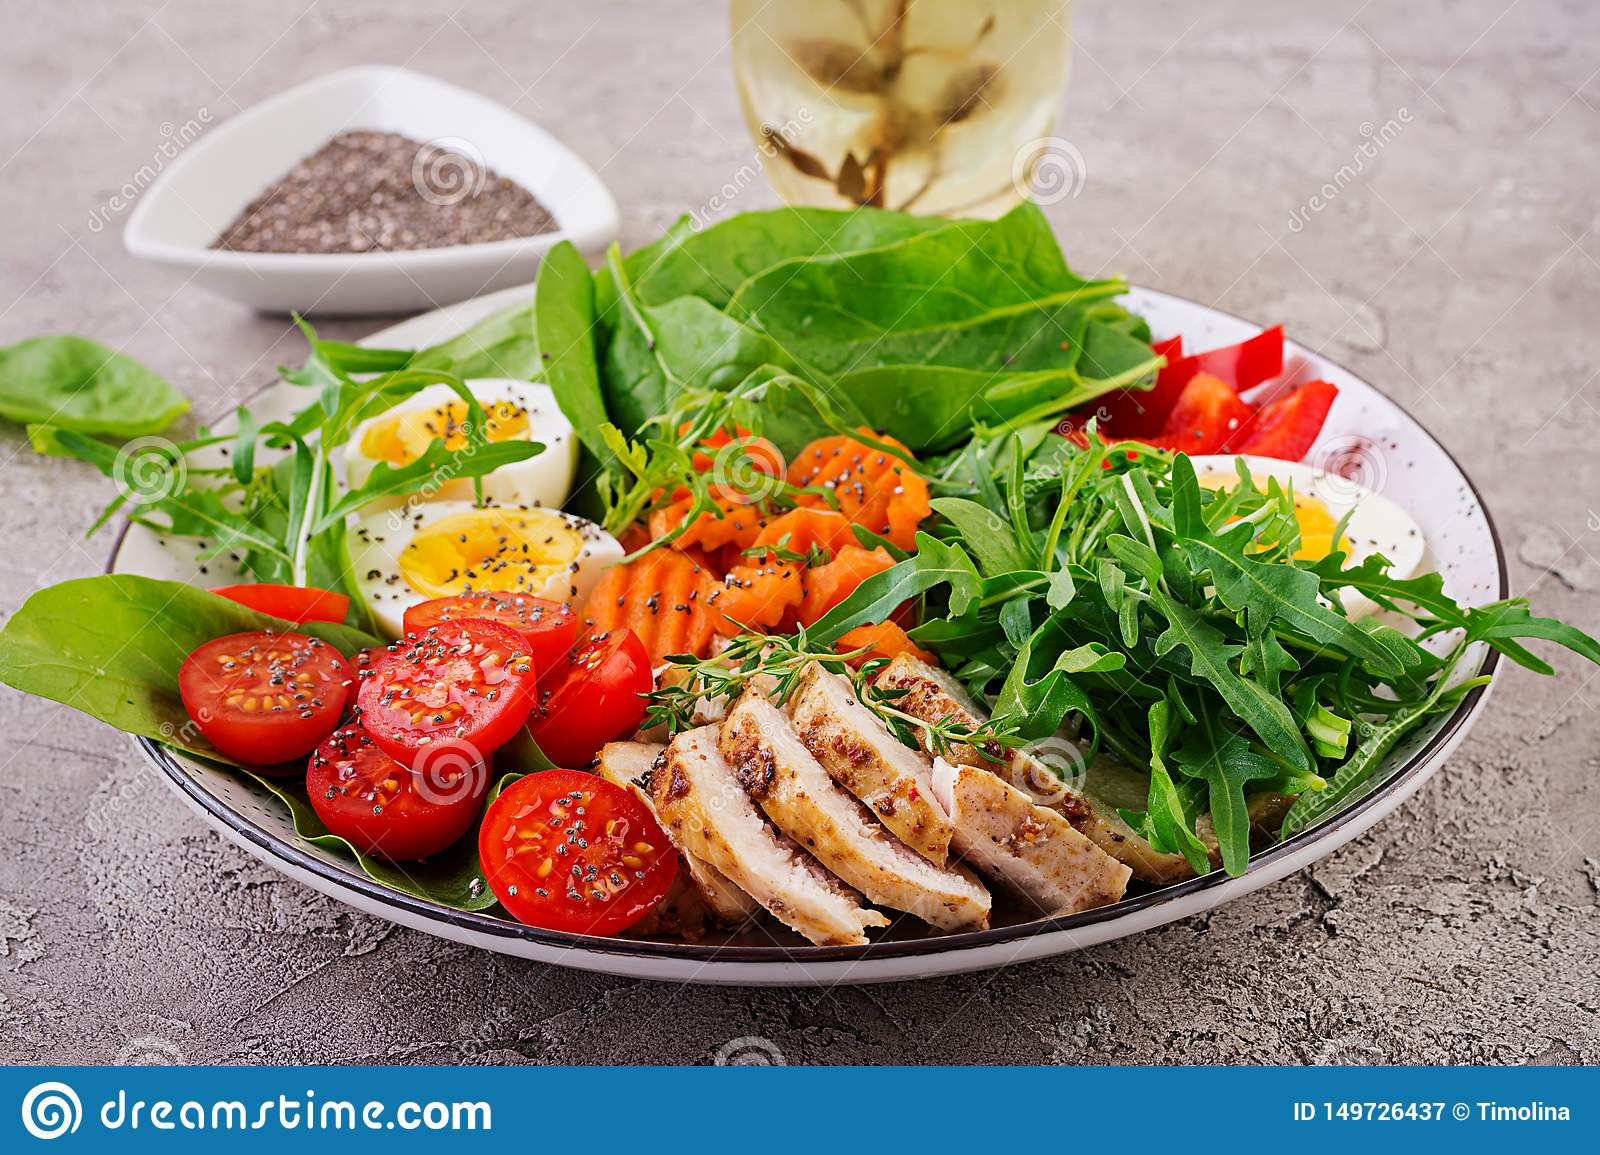 Cherry tomatoes, chicken breast, eggs, carrot, salad with arugula